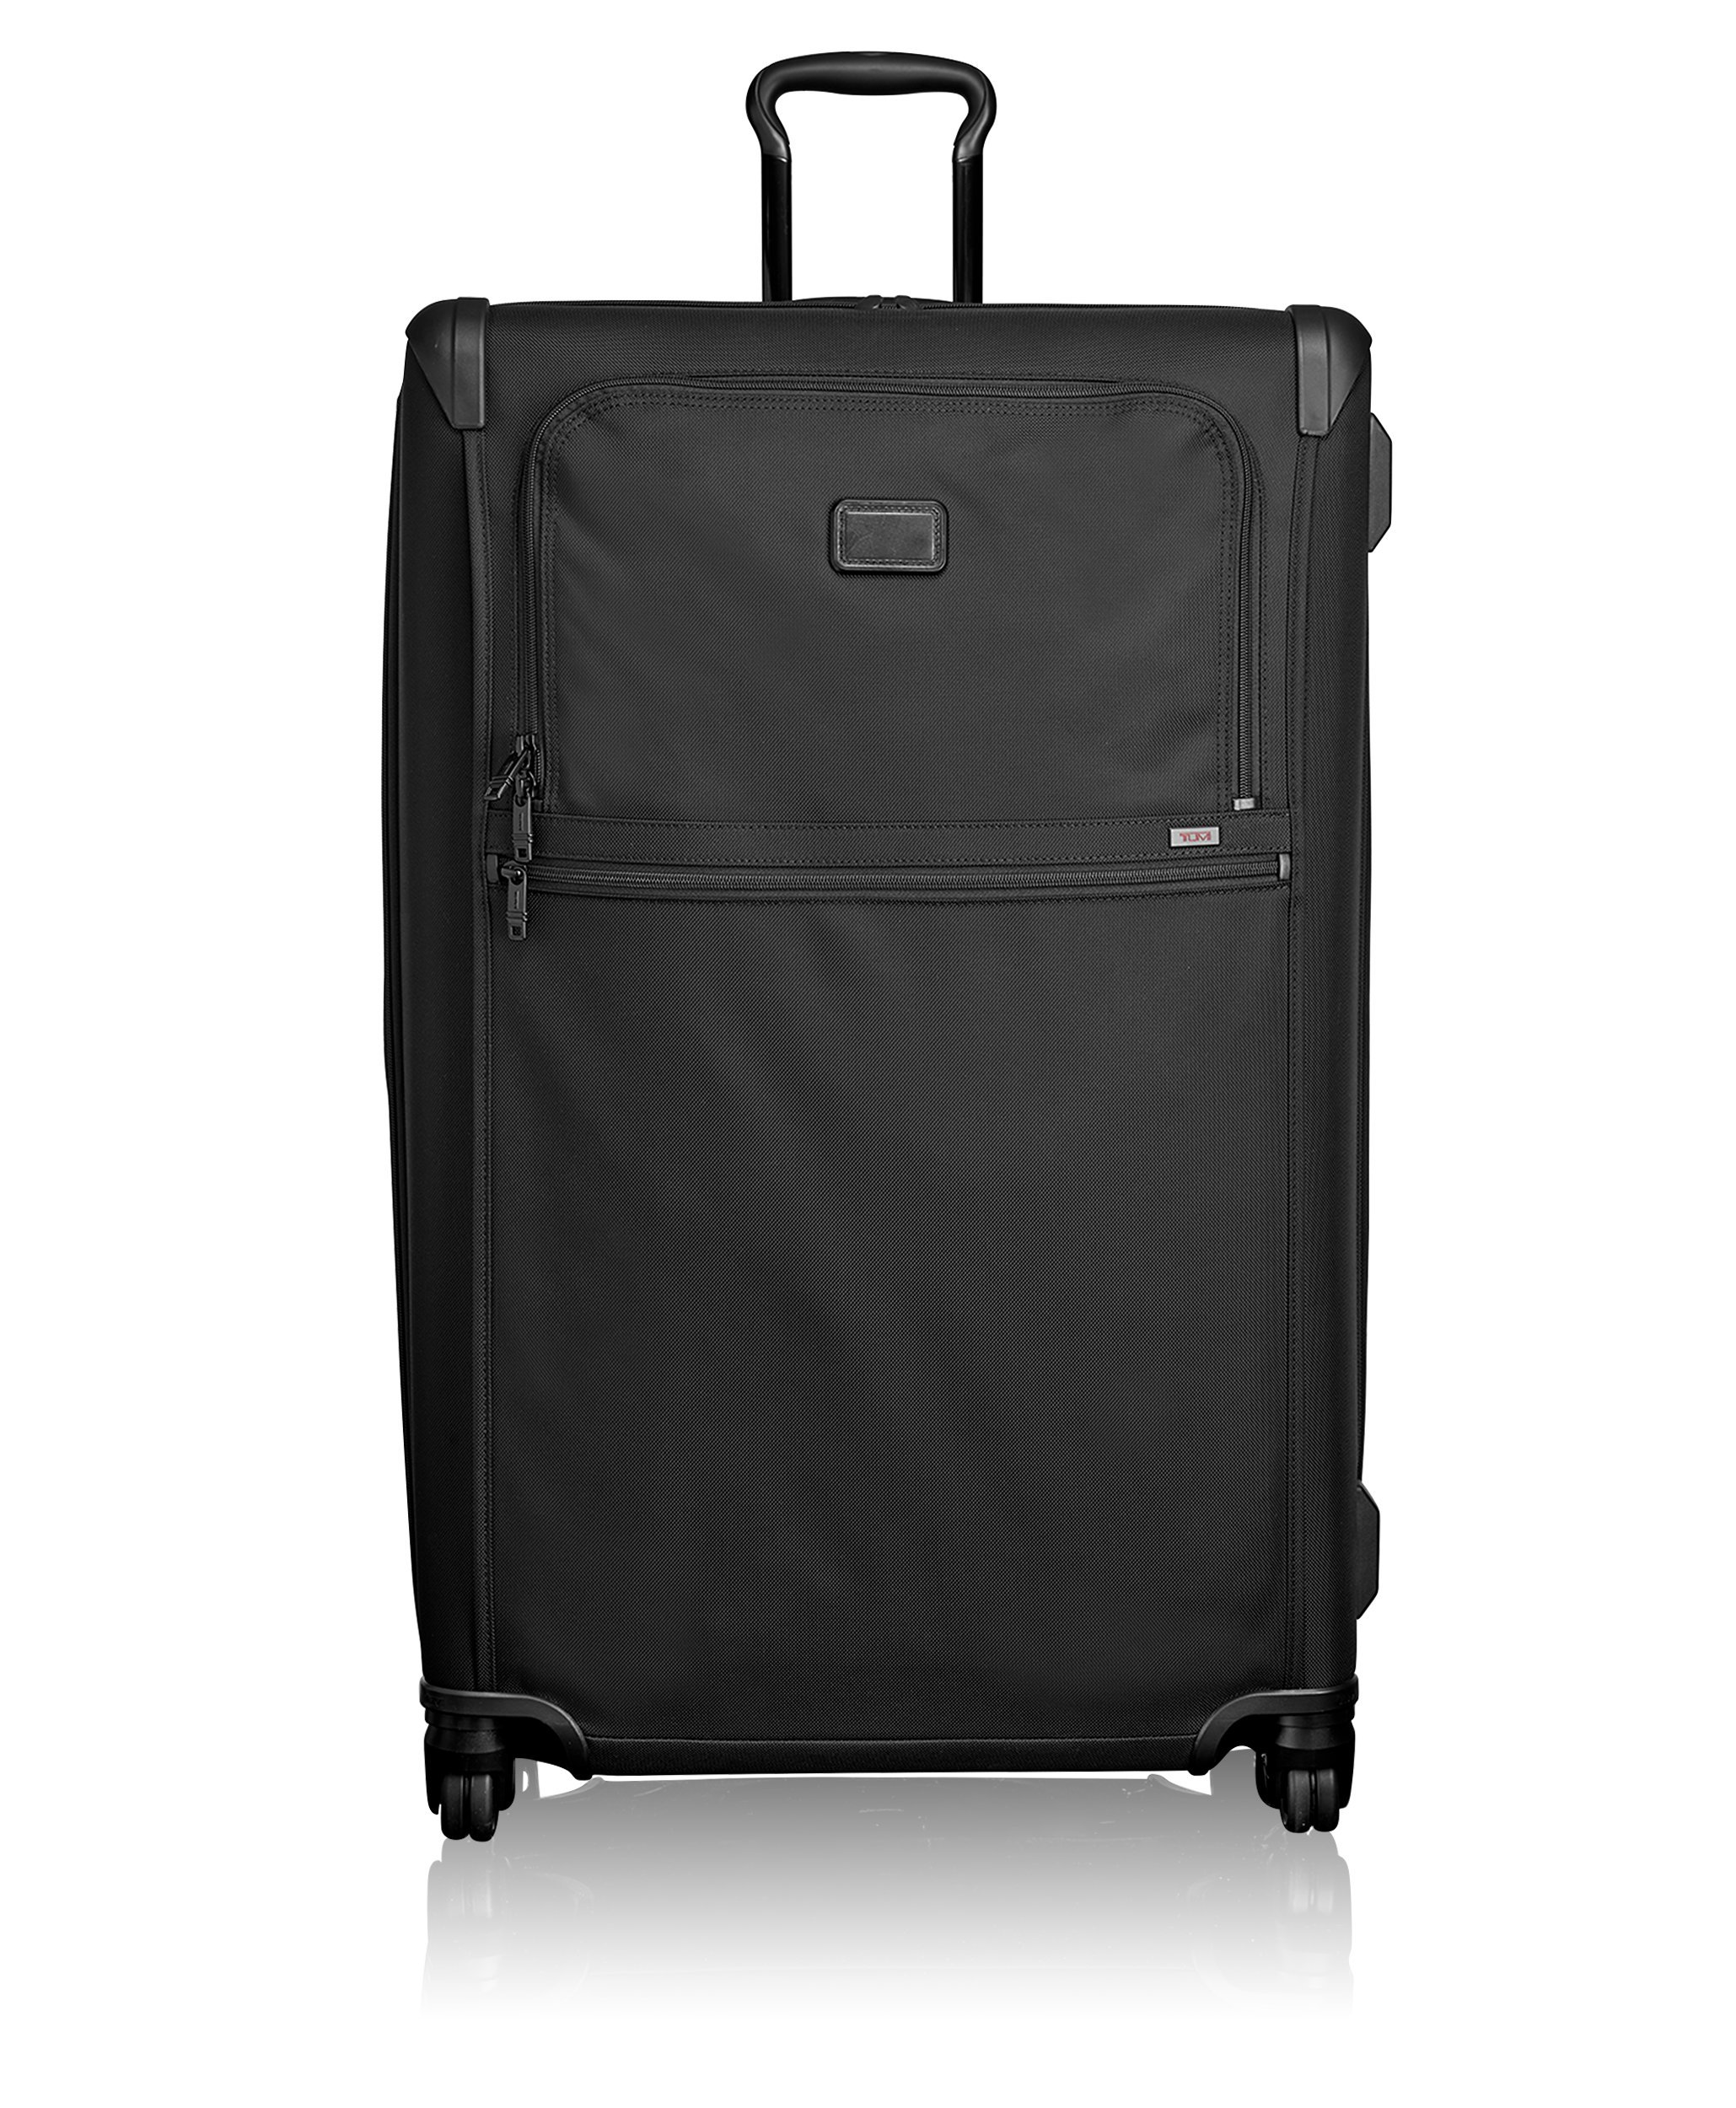 Tumi Alpha 2 Worldwide Trip Expandable 4 Wheel Packing Case, Black, One Size